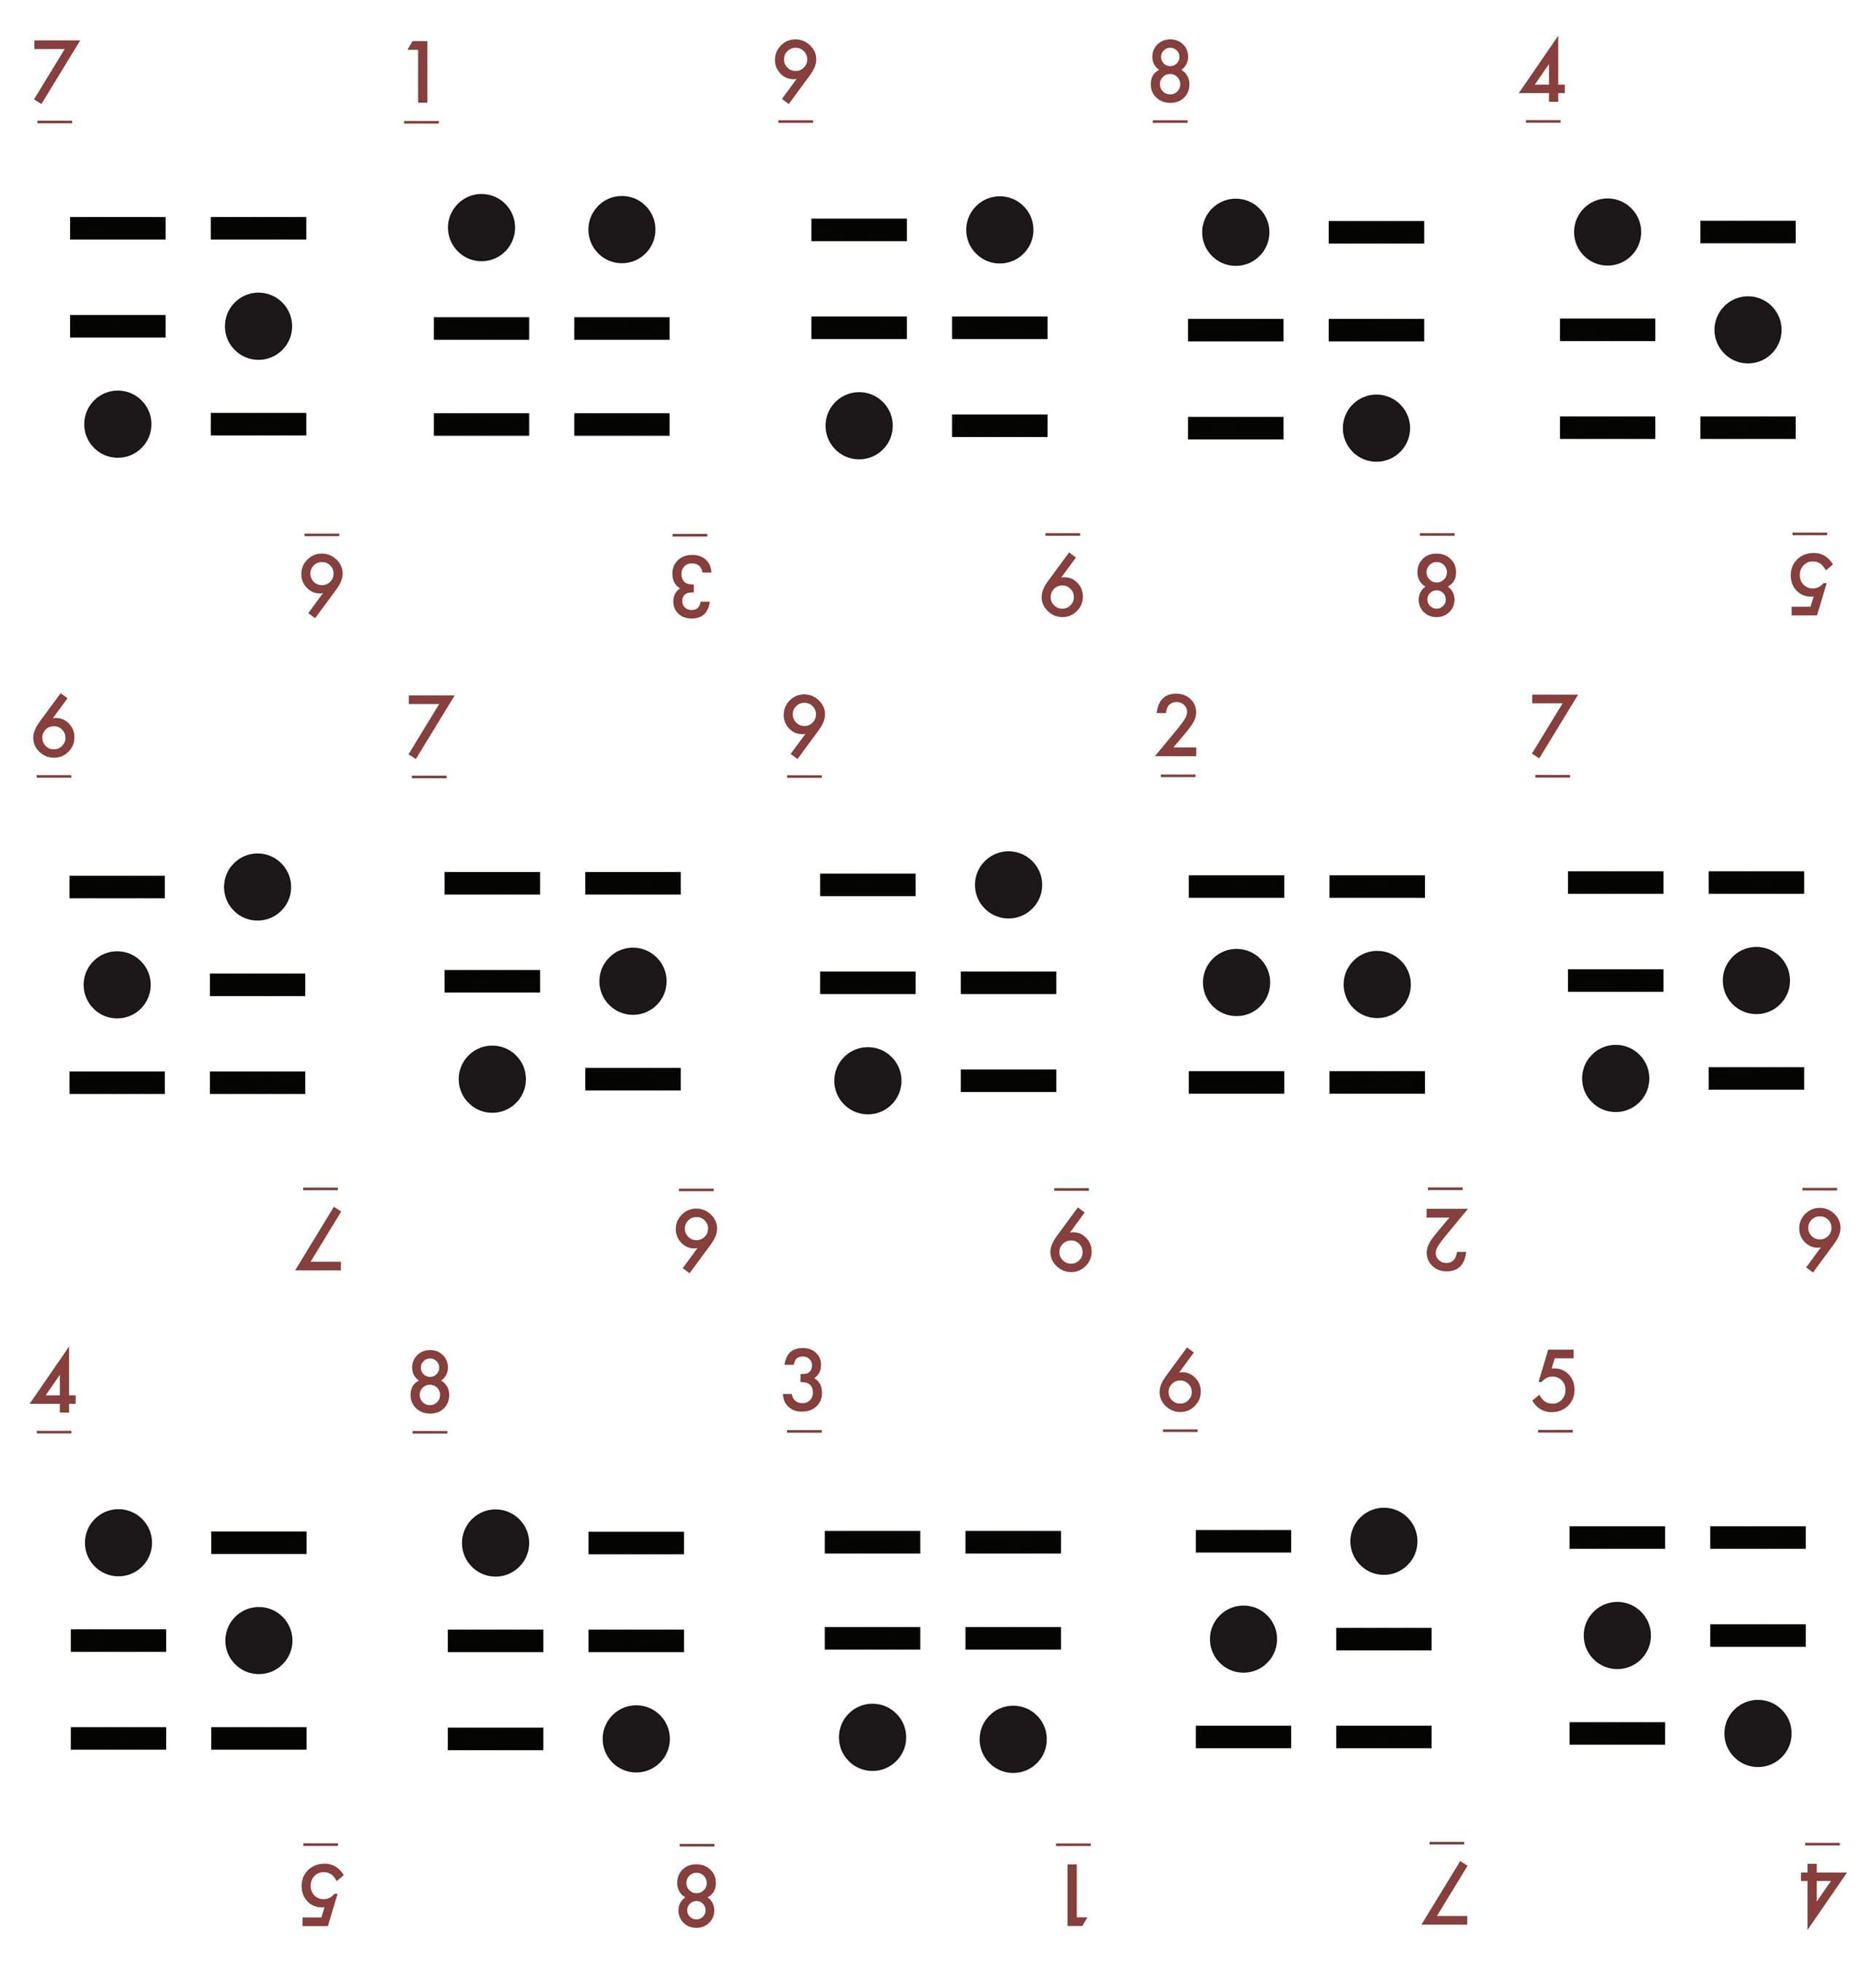 Play The Percussion Fill Next Time You Rehearse Drums Drumstudent Llrr Drumbeat Drumset Drum Patterns Pattern Card Patterns